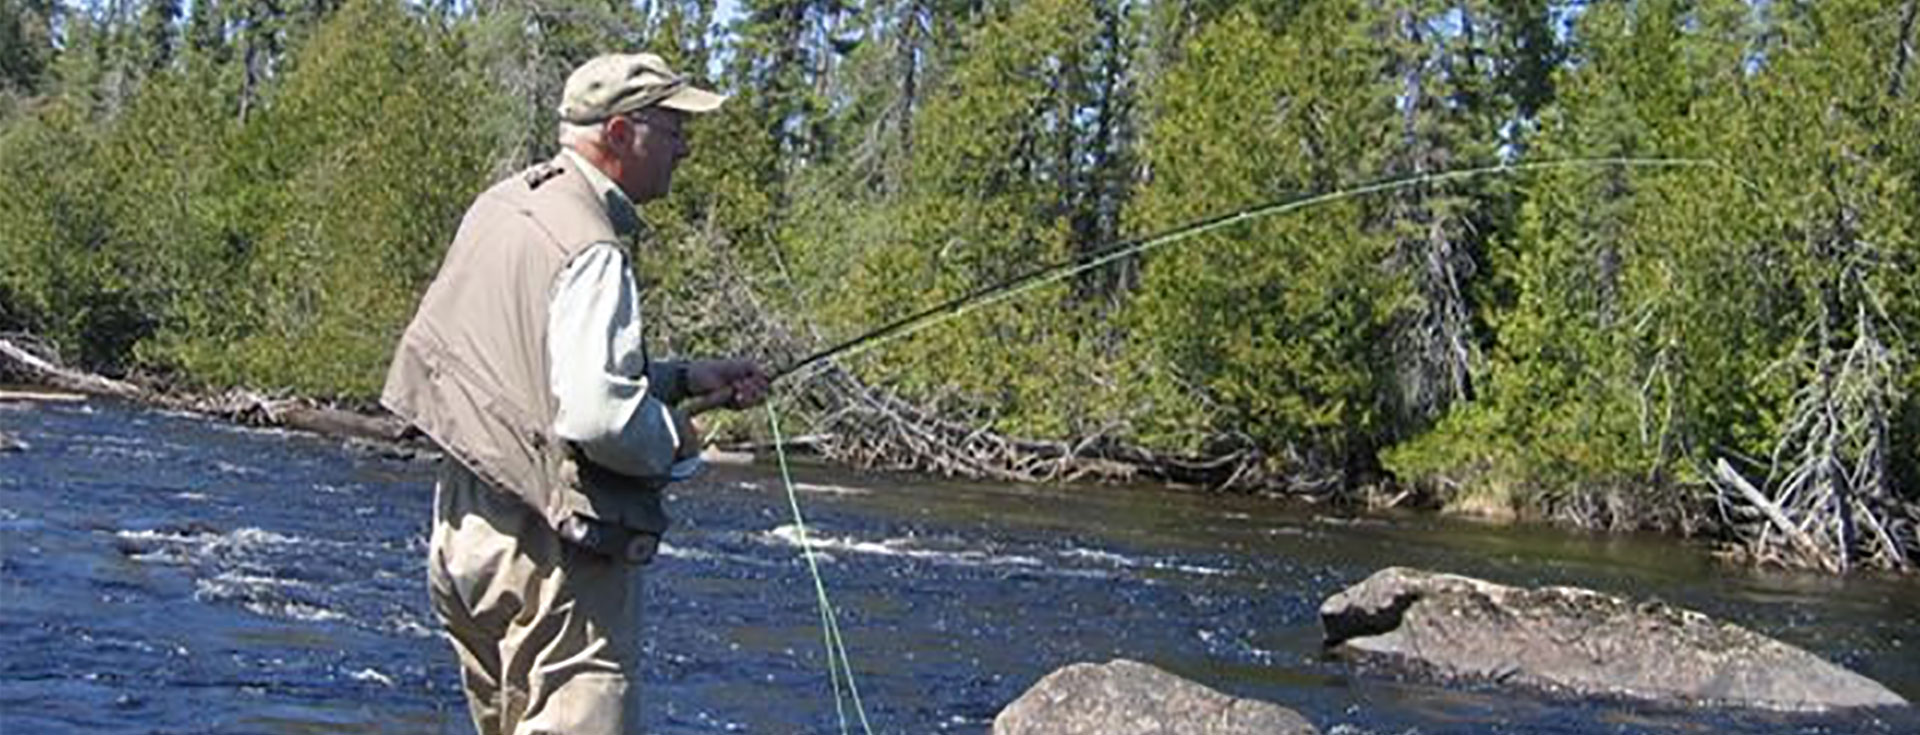 Ontario fly fishing fly fishing outpost camps ontario canada for Ontario fly in fishing outposts